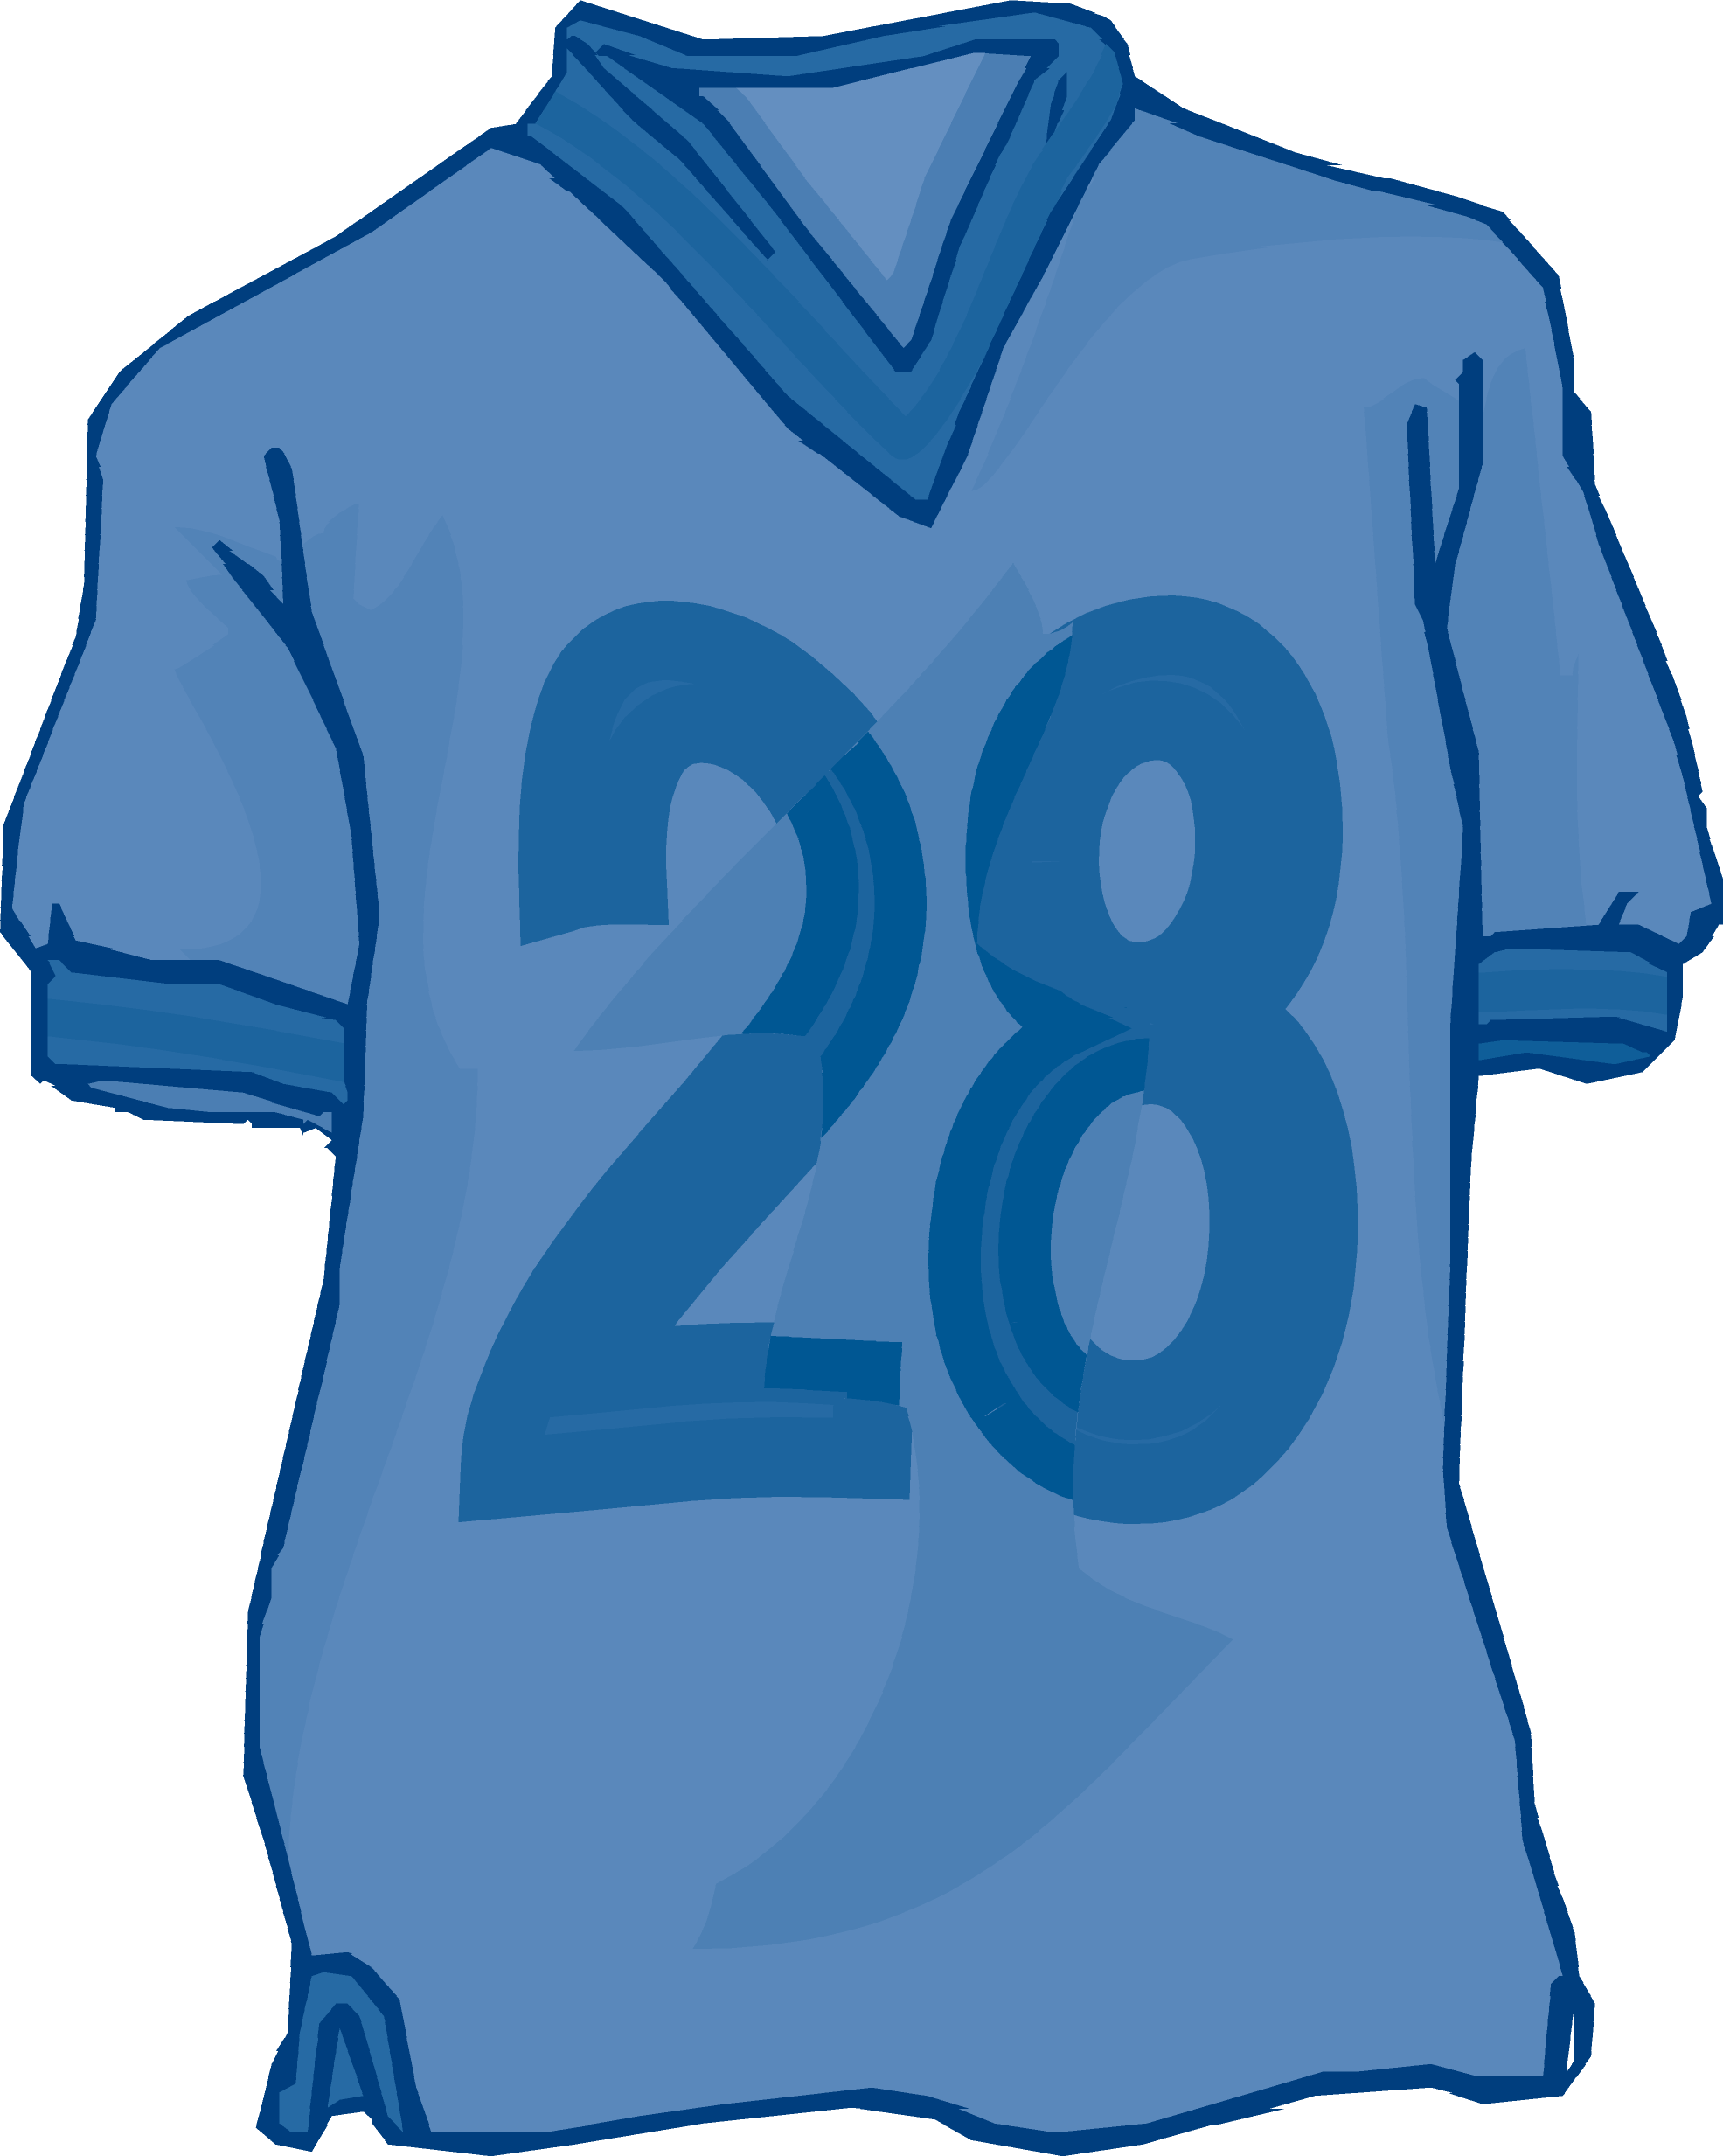 Football Jersey Clip Art - Cliparts.co